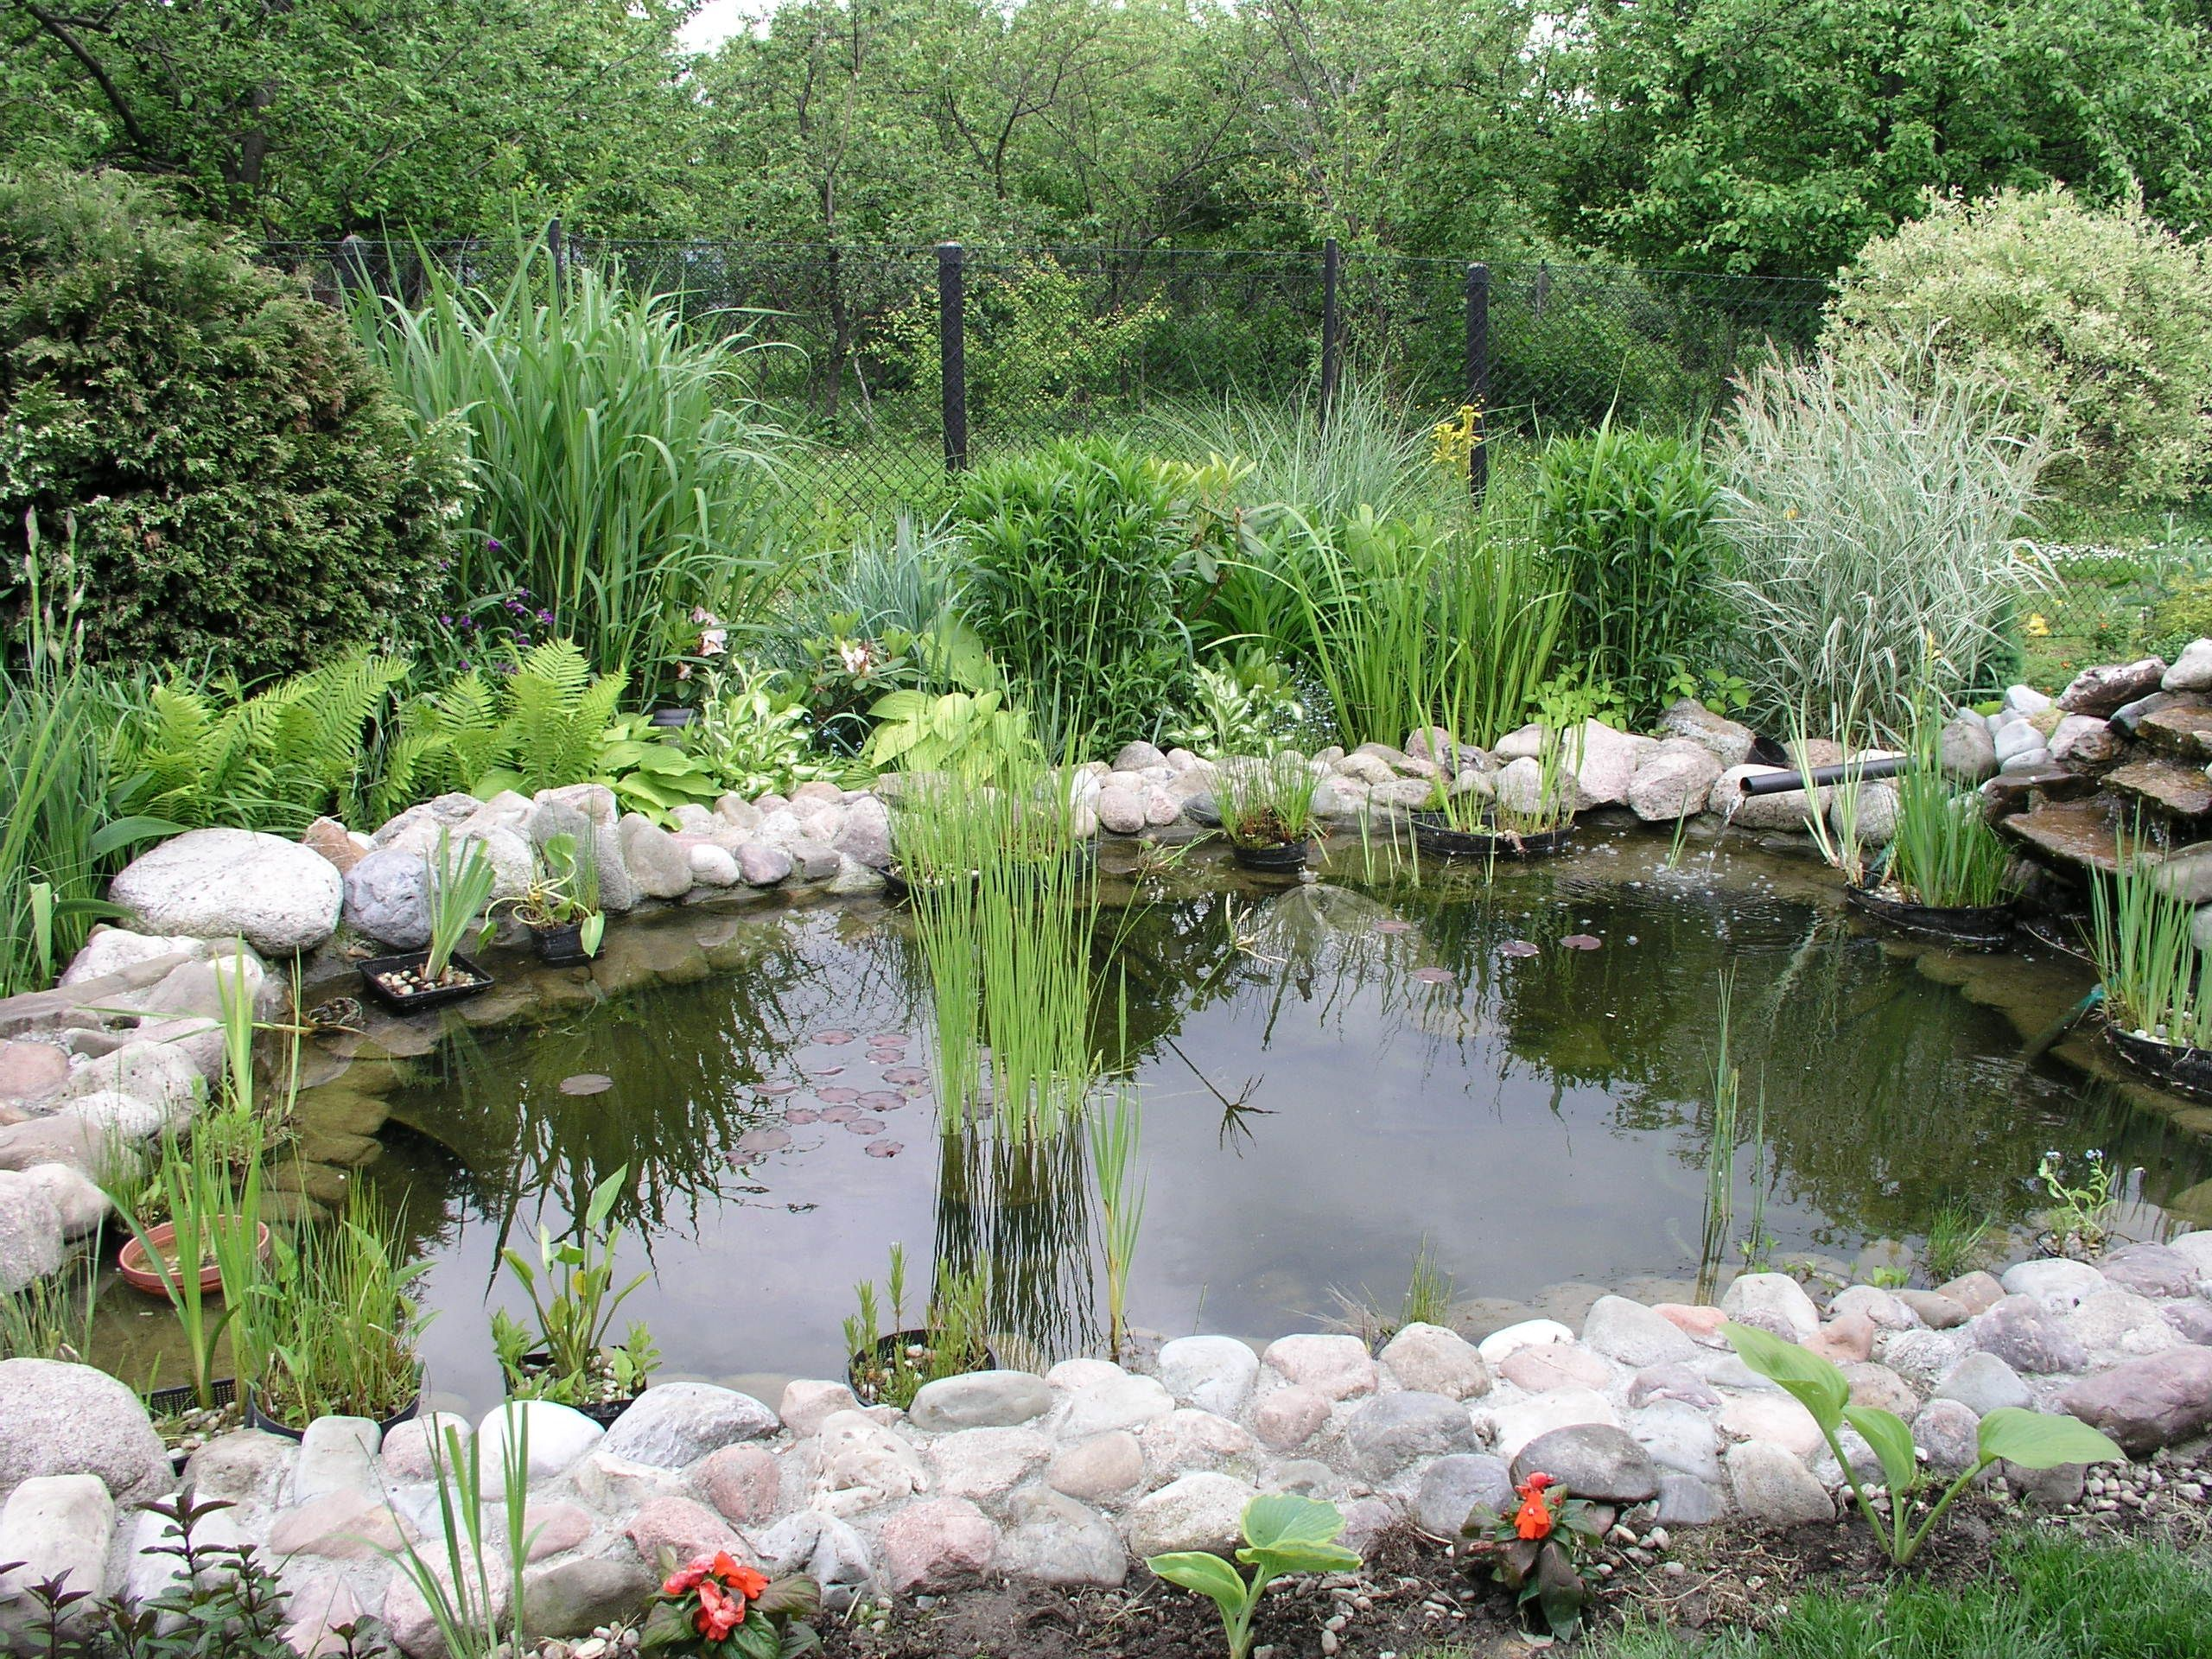 File:Garden pond 2.jpg - Wikimedia Commons